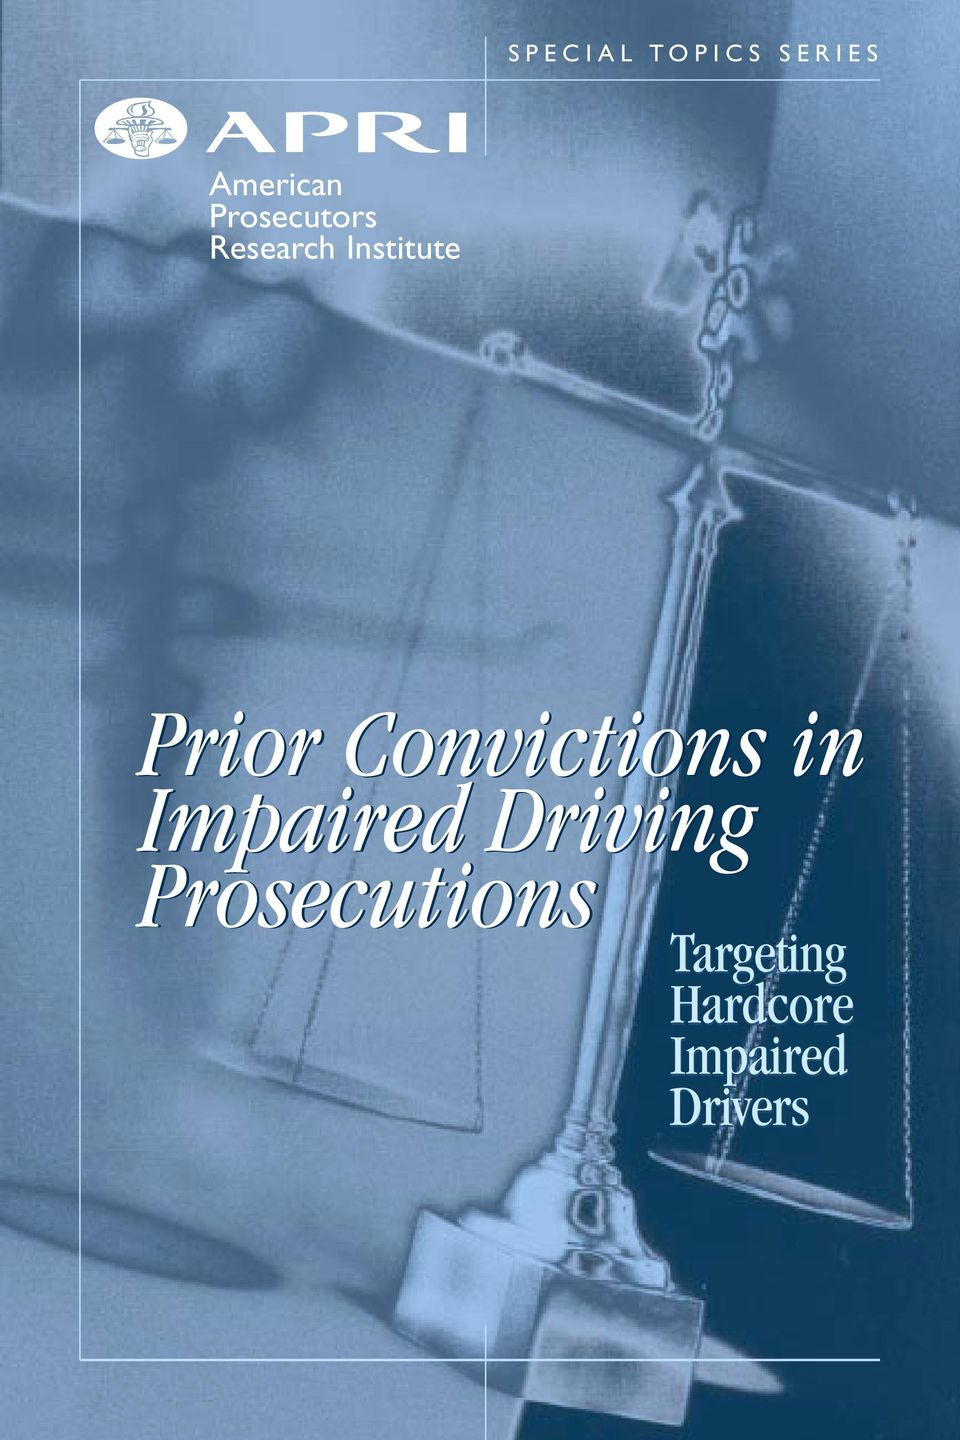 Convictions in Impaired Driving